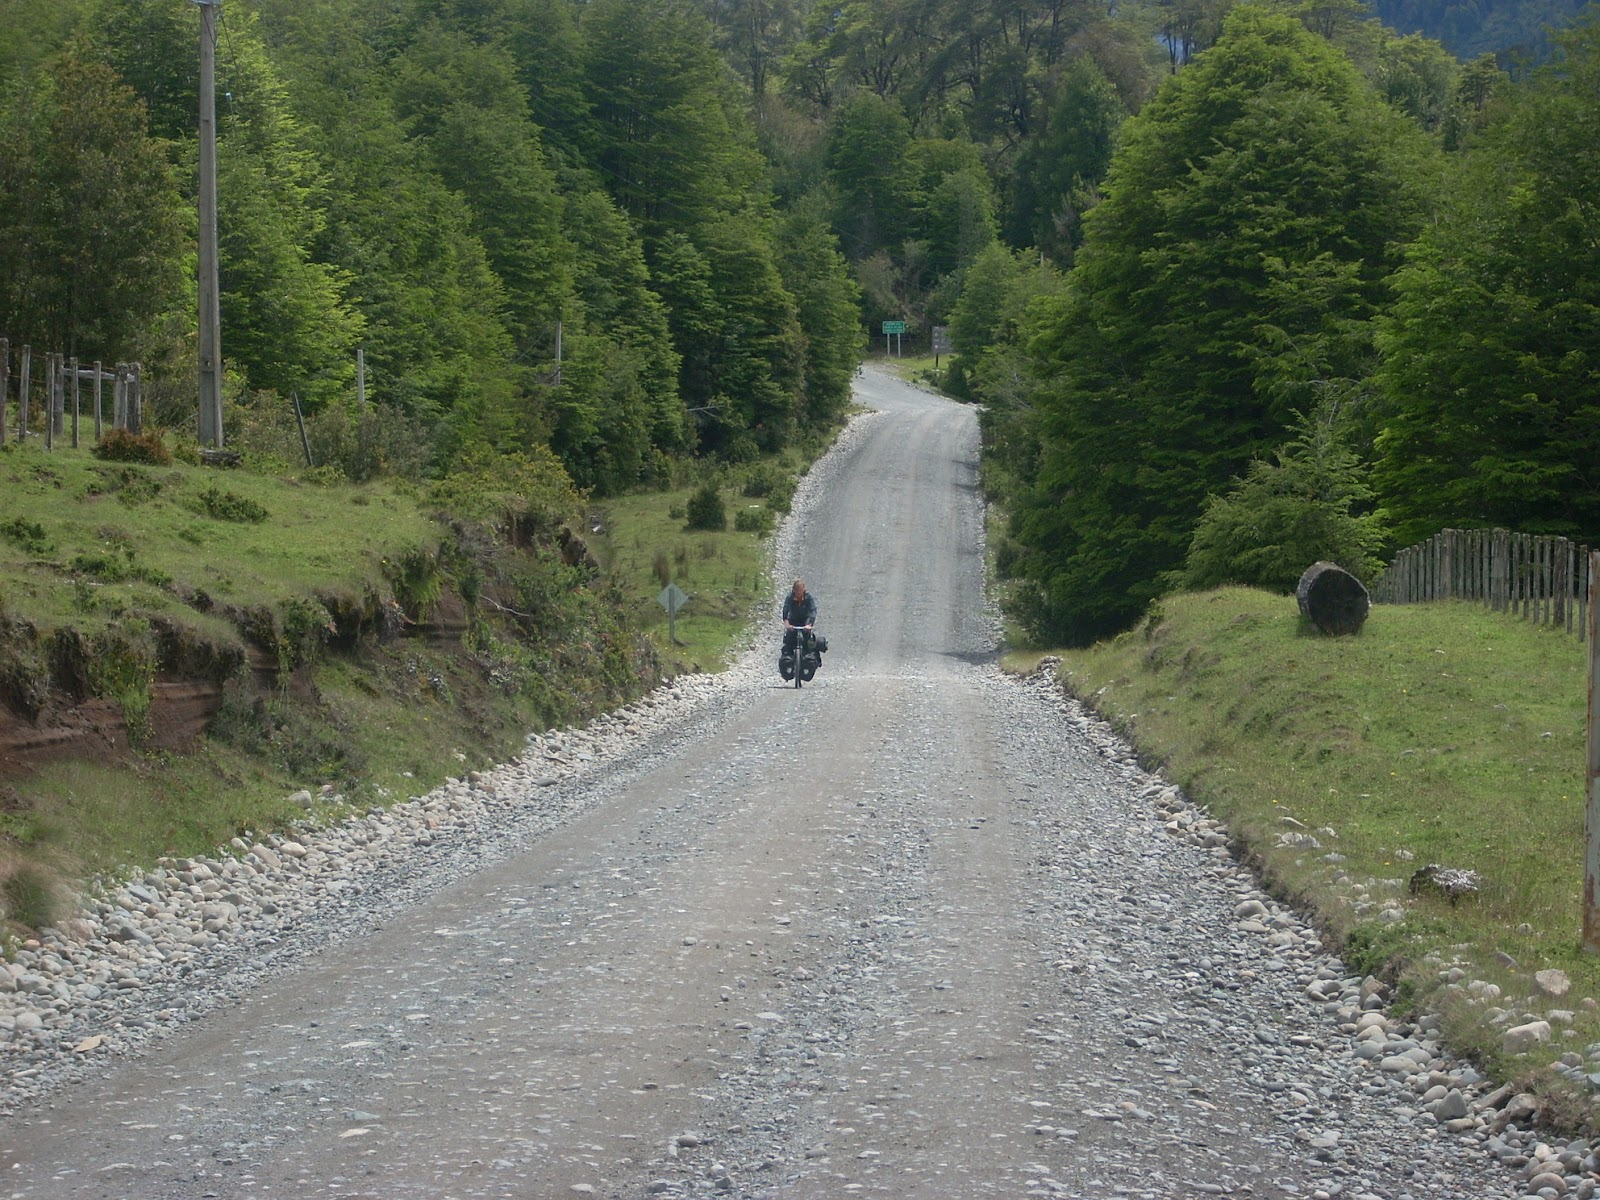 First day on the Carretera Austral proper